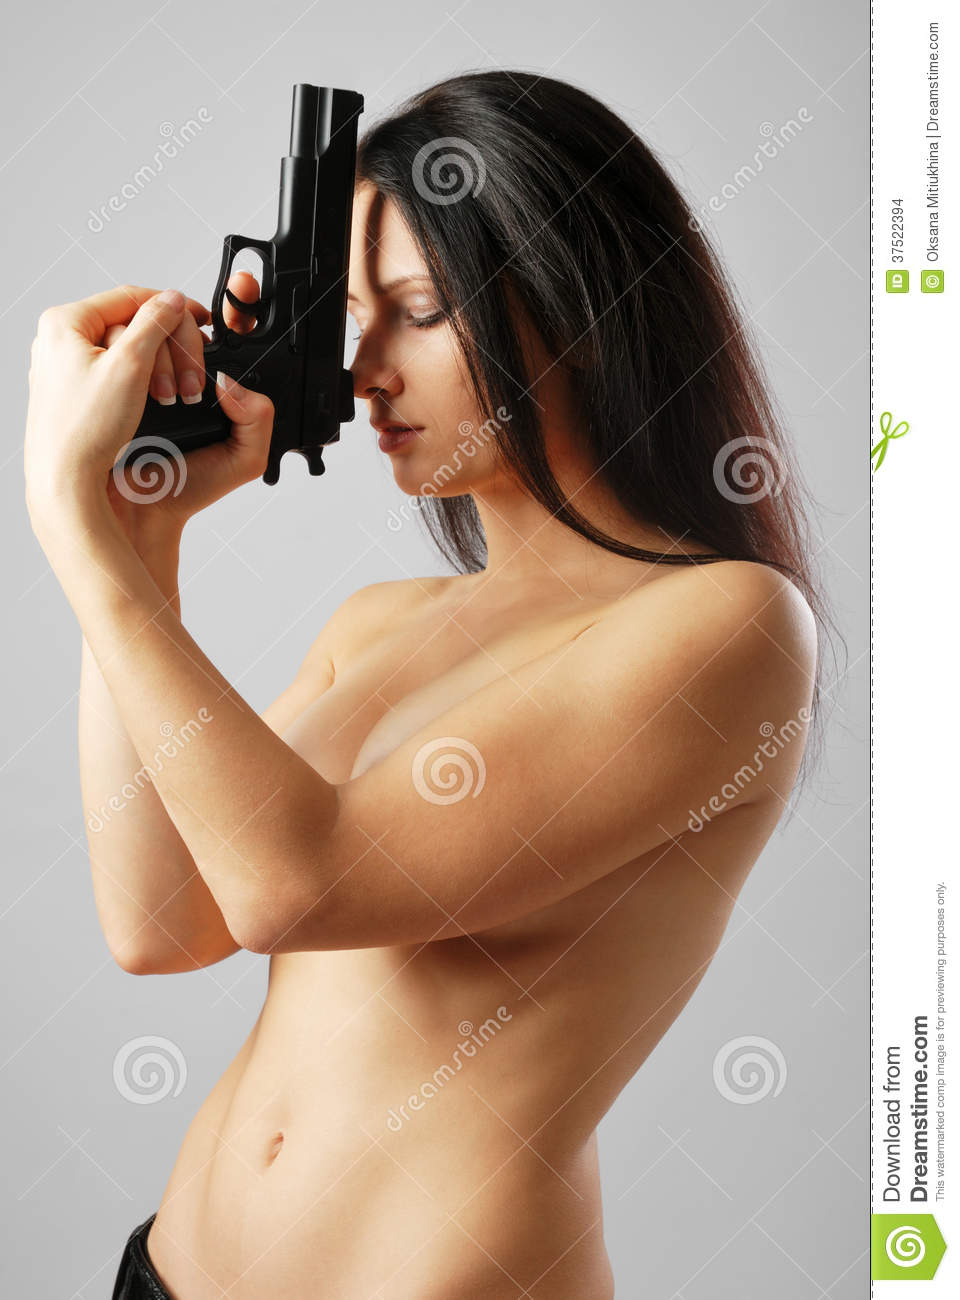 Nude Woman With Gun 111